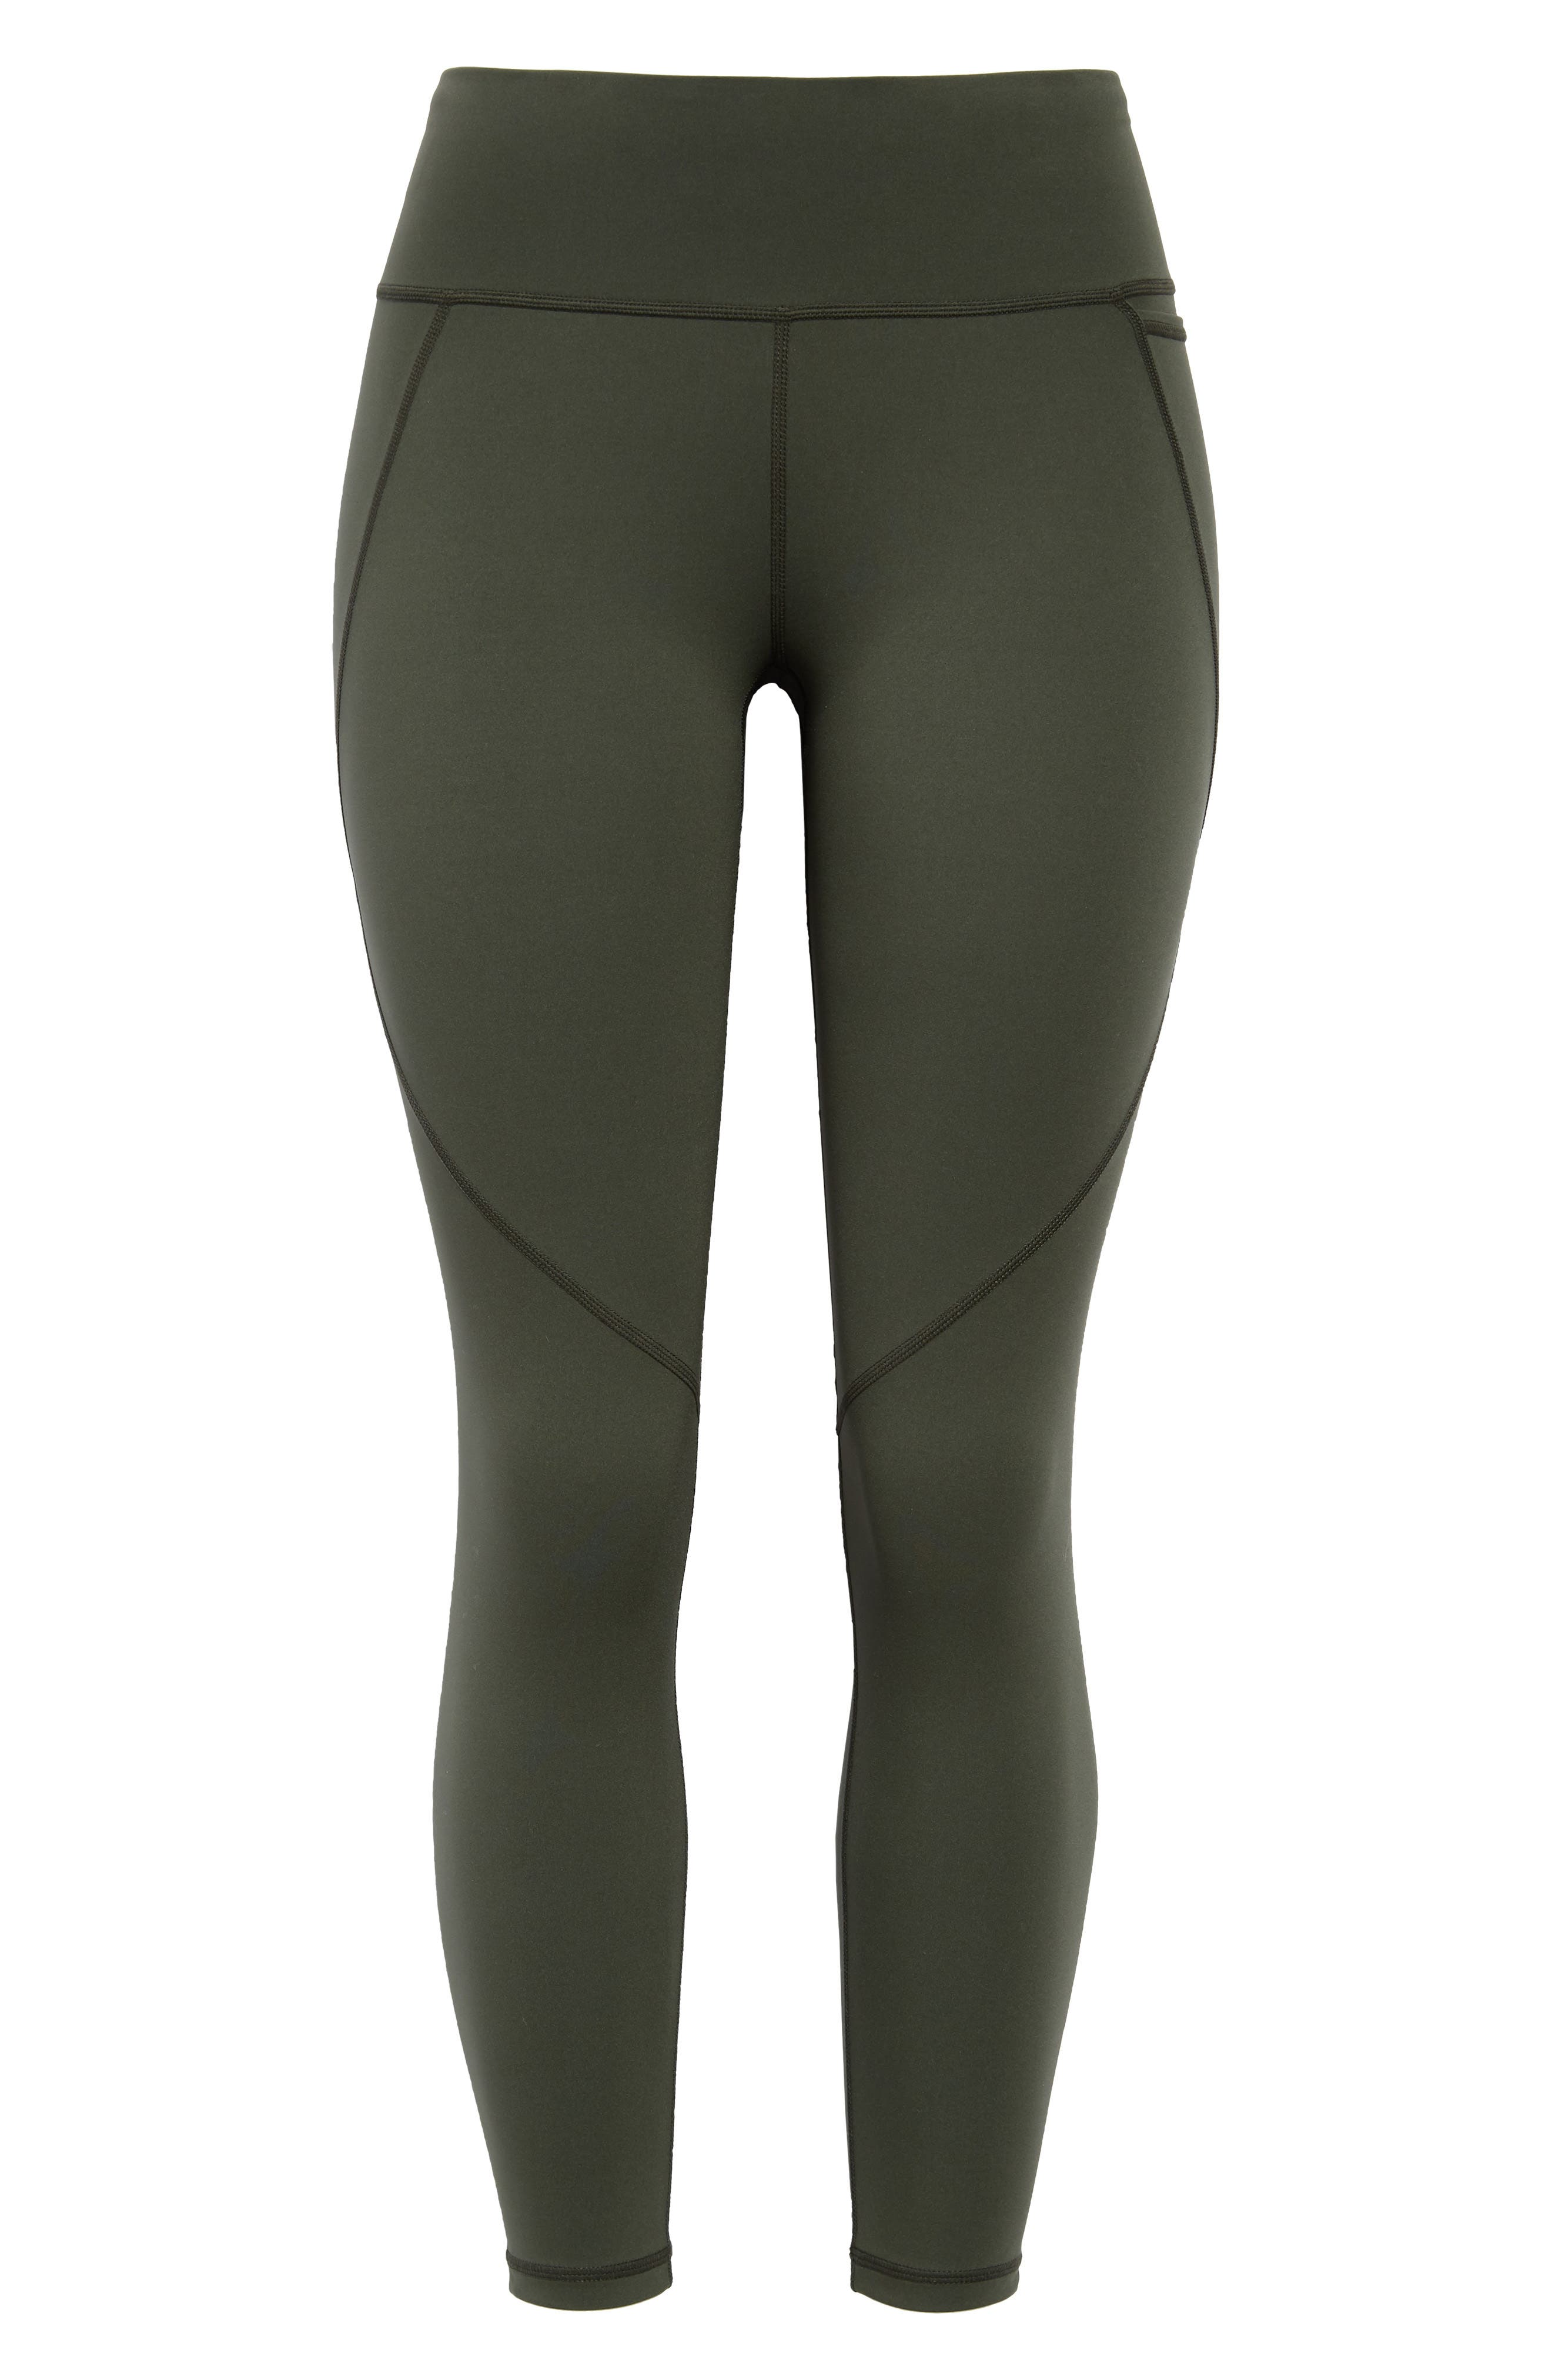 Power through tough workouts in these leggings cut from a super-stretchy fabric that sculpts as it supports hard-working muscles to their best performance. Handy side and back-zip pockets securely hold your phone or media player while you pound out those miles. Style Name: Sweaty Betty Power 7/8 Workout Leggings. Style Number: 5789648. Available in stores.